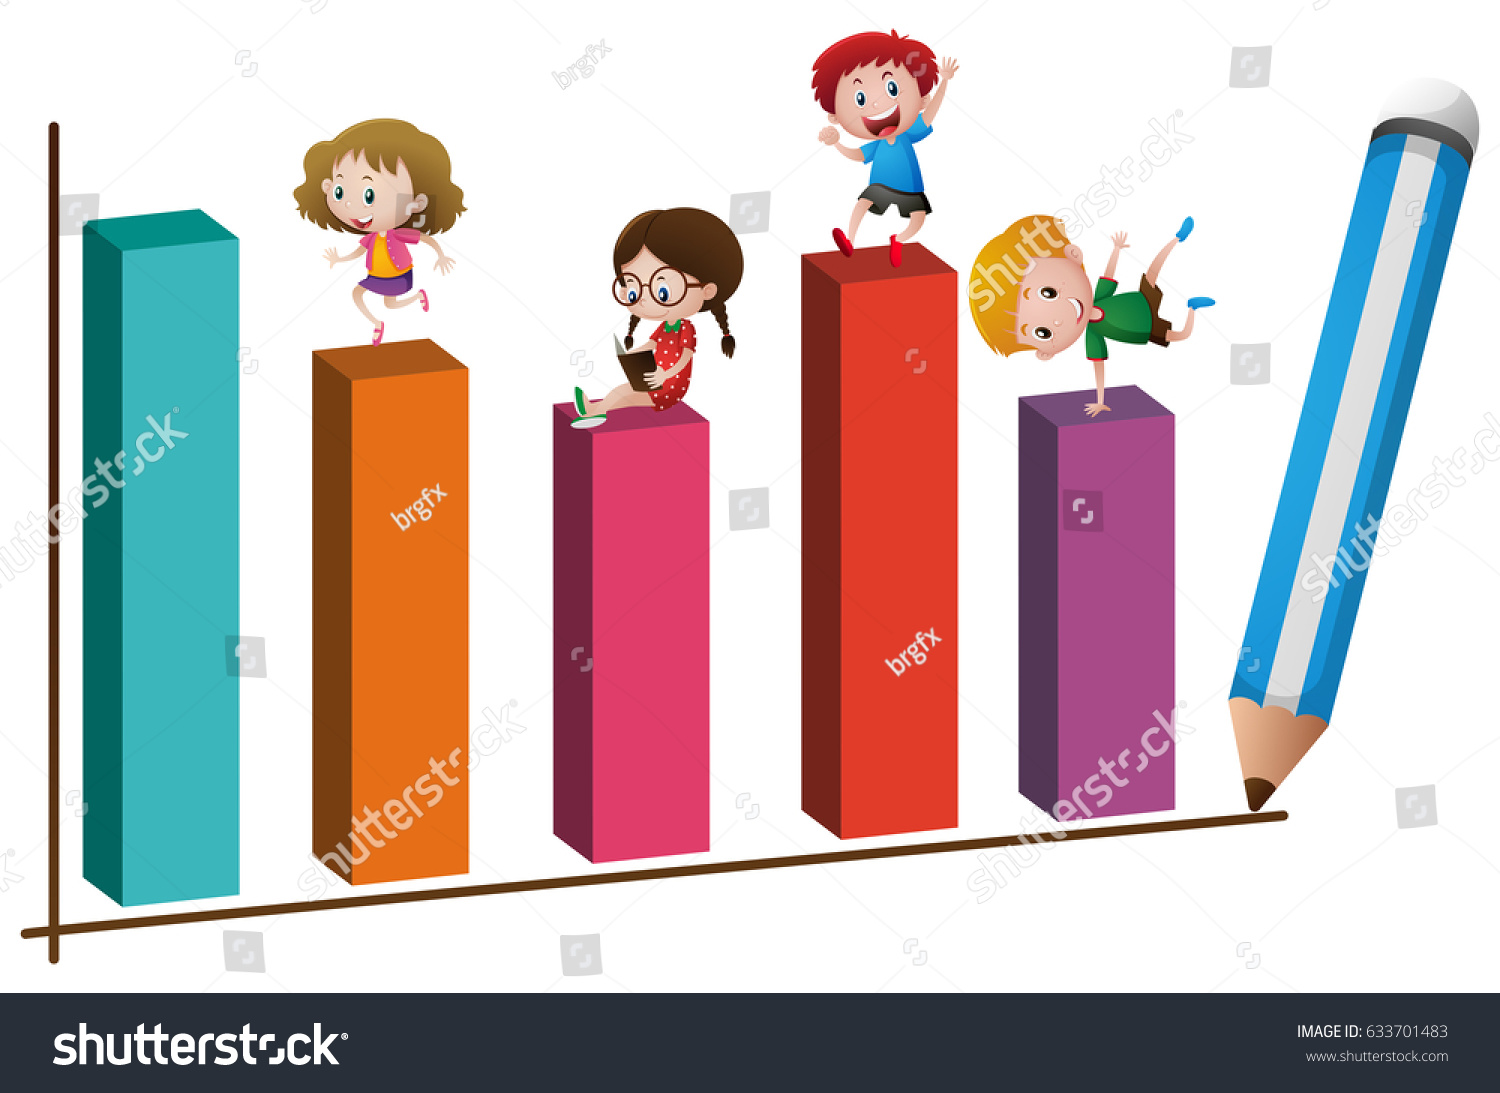 kids playing on graph stock vector (royalty free) 633701483